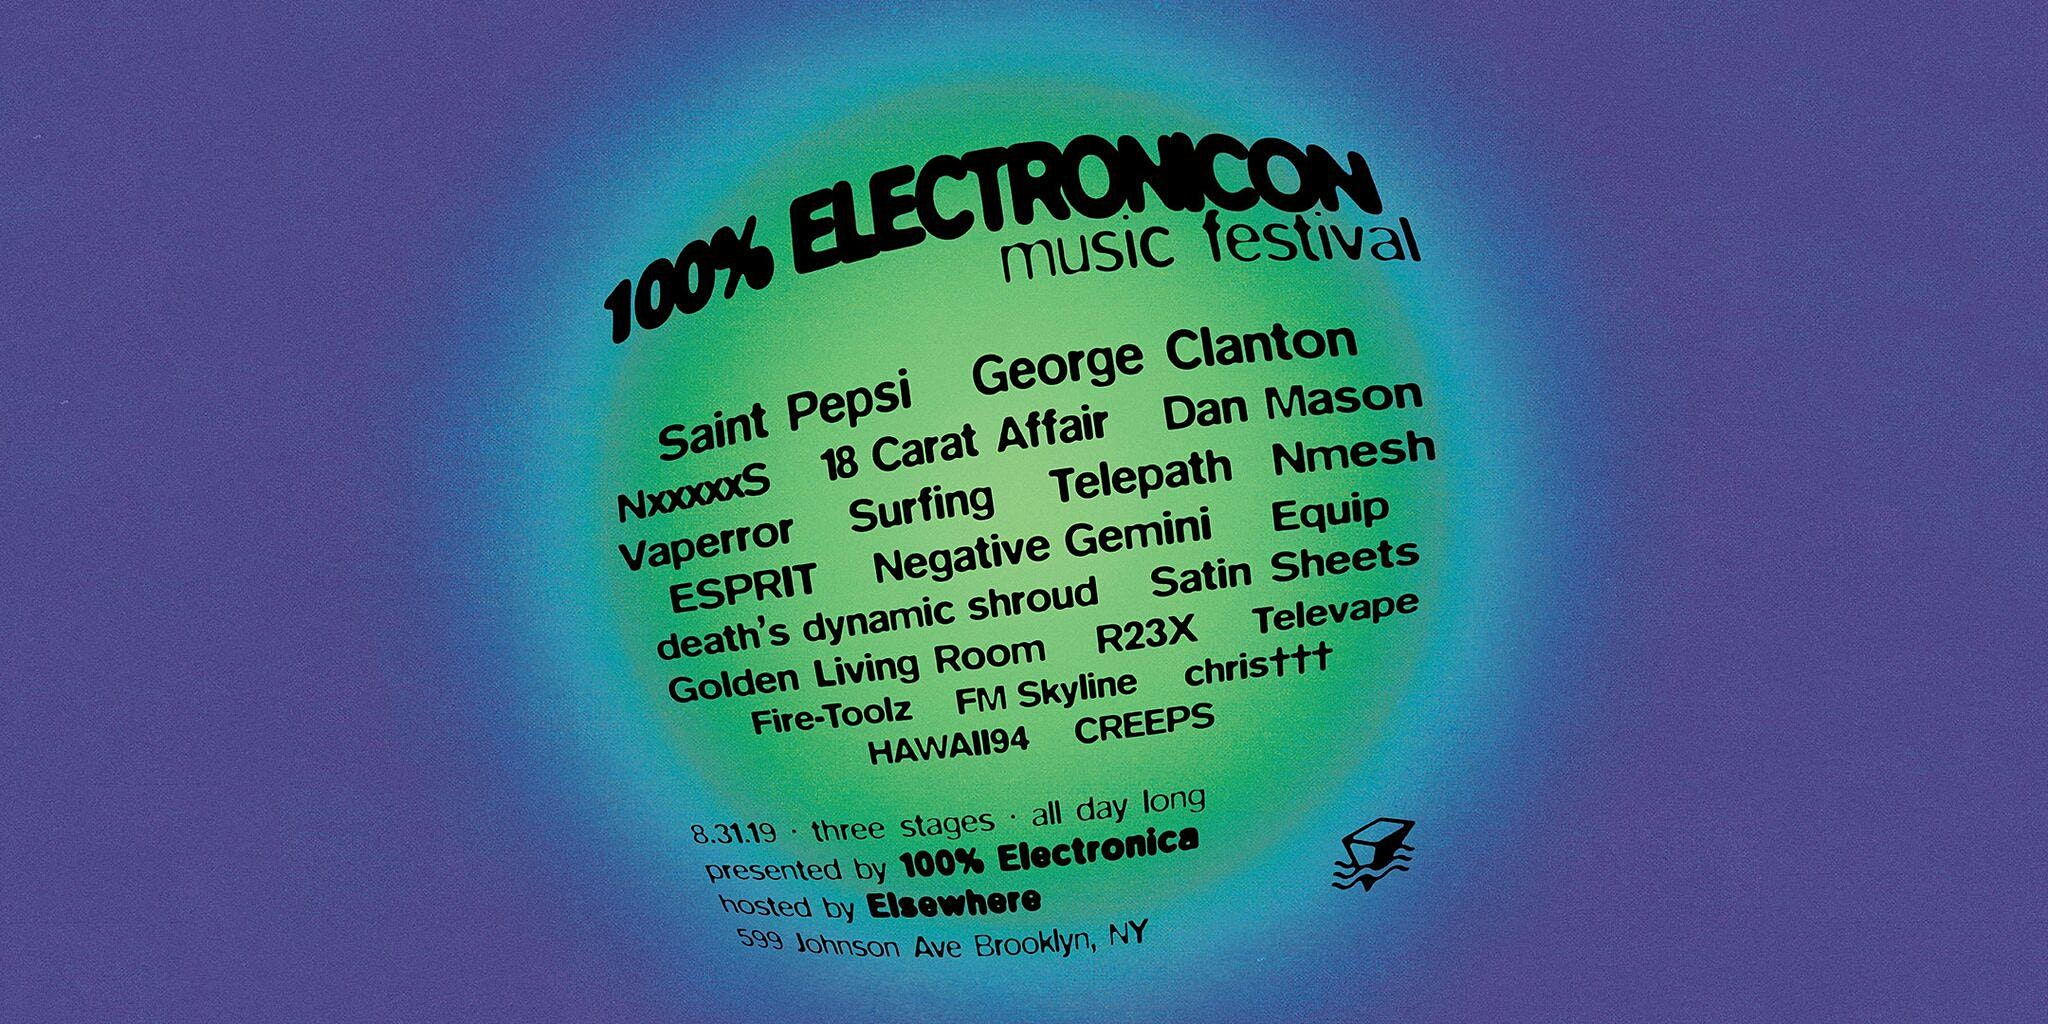 100% ElectroniCON (Elsewhere Takeover!) w/ George Clanton, Saint Pepsi and many more